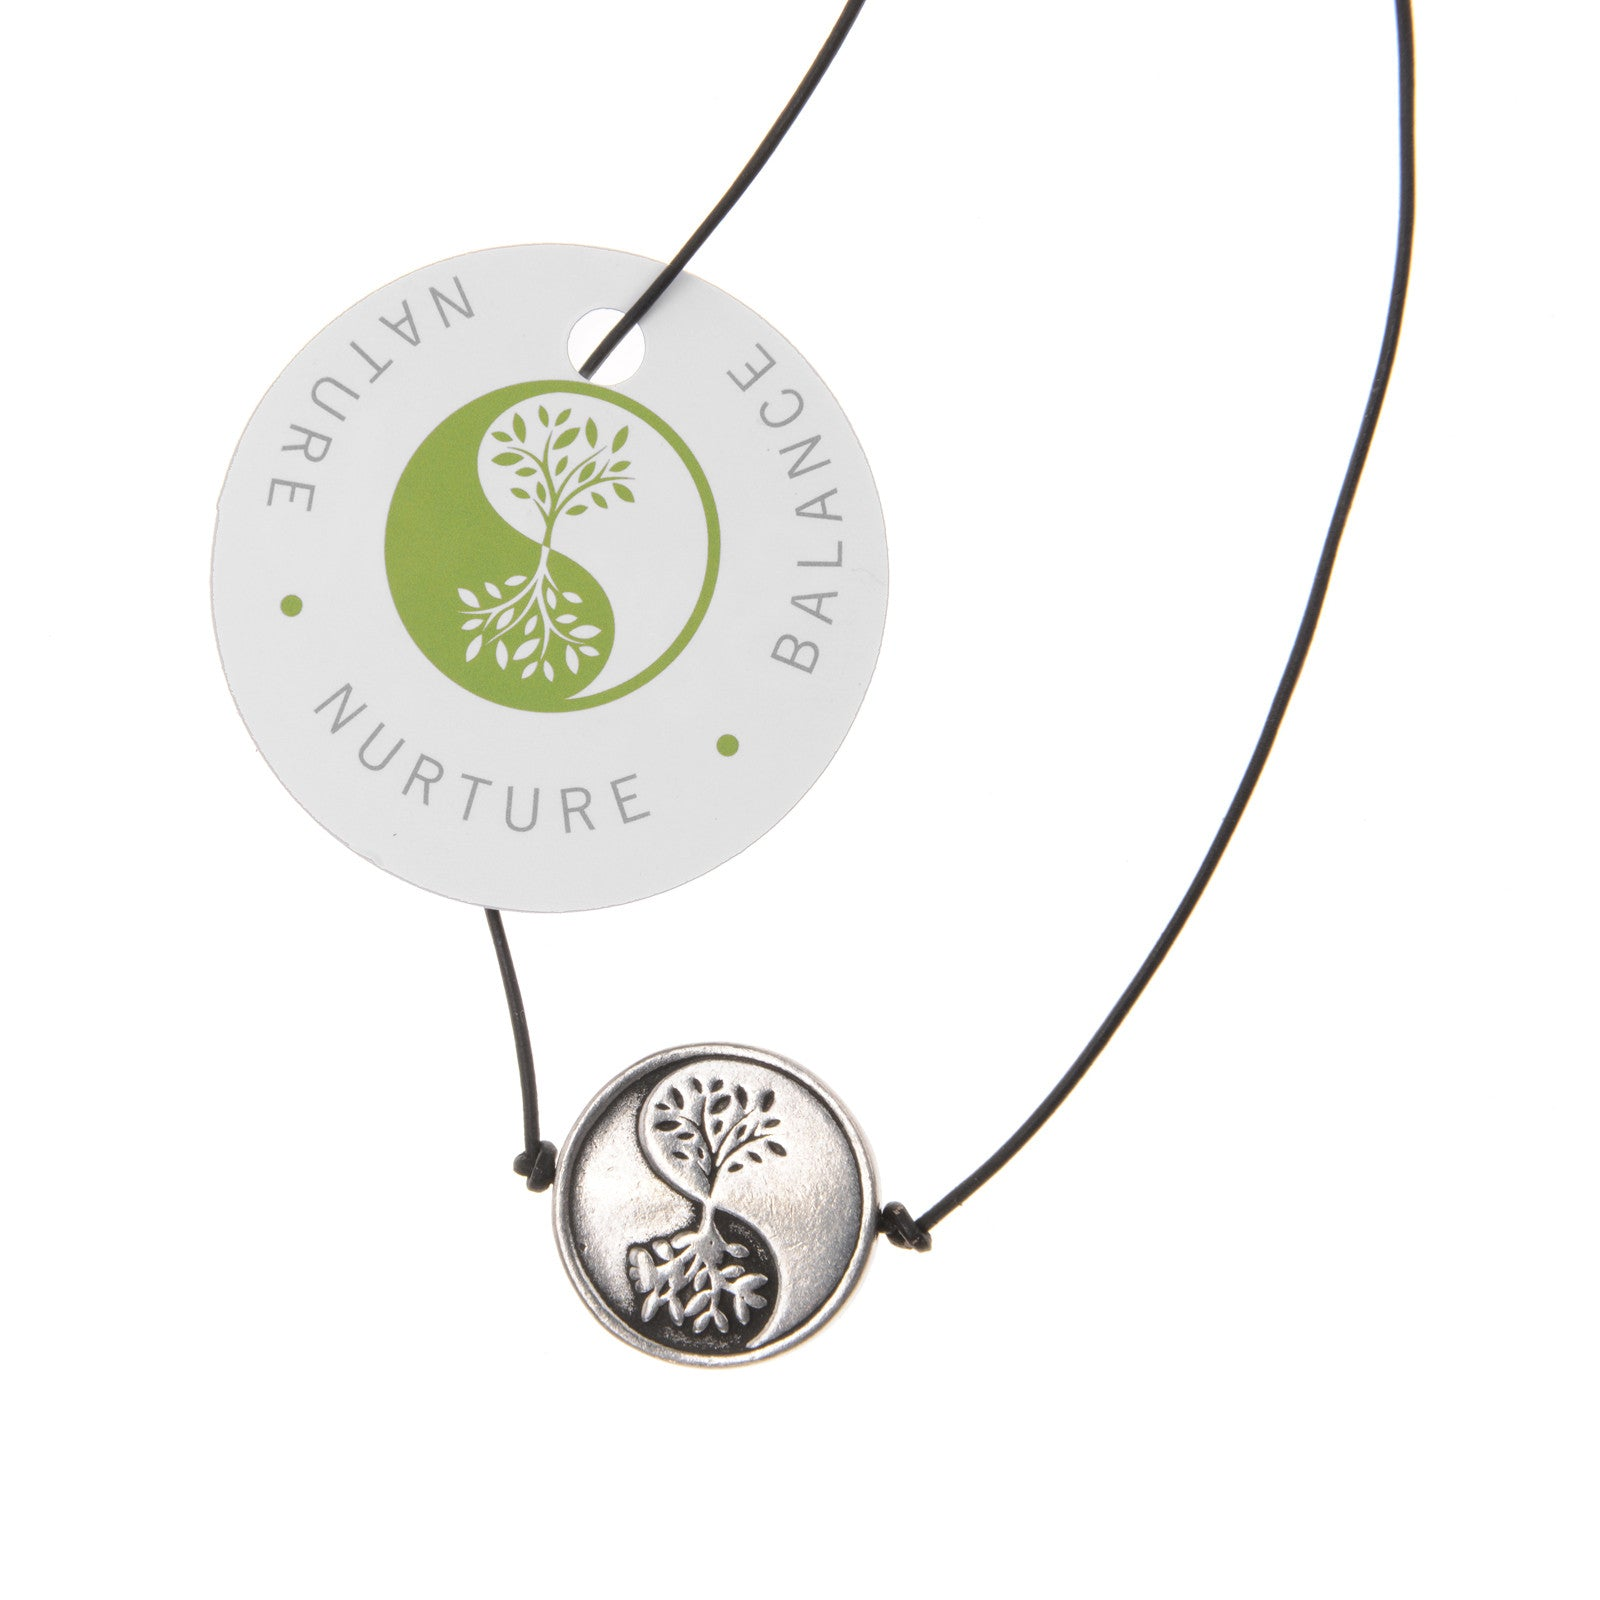 The Tree of Life: Nature, Nurture, Balance - Whitney Howard Designs